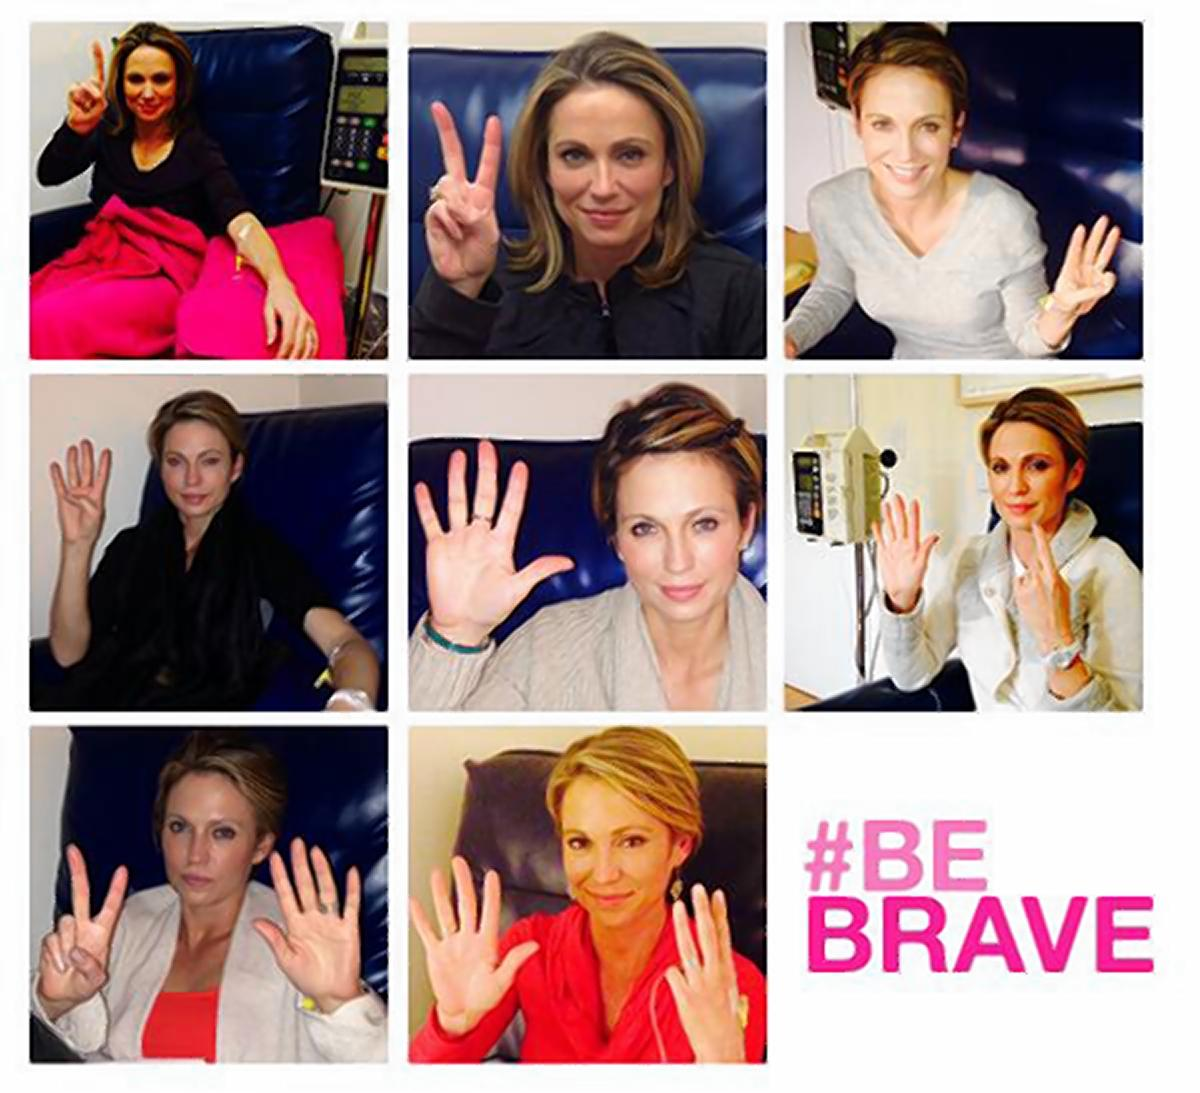 'Today is my final round of chemotherapy. I wanted to share this moment with you to encourage anyone facing this battle,' Amy Robach said after she finished her last round of chemotherapy for breast cancer.